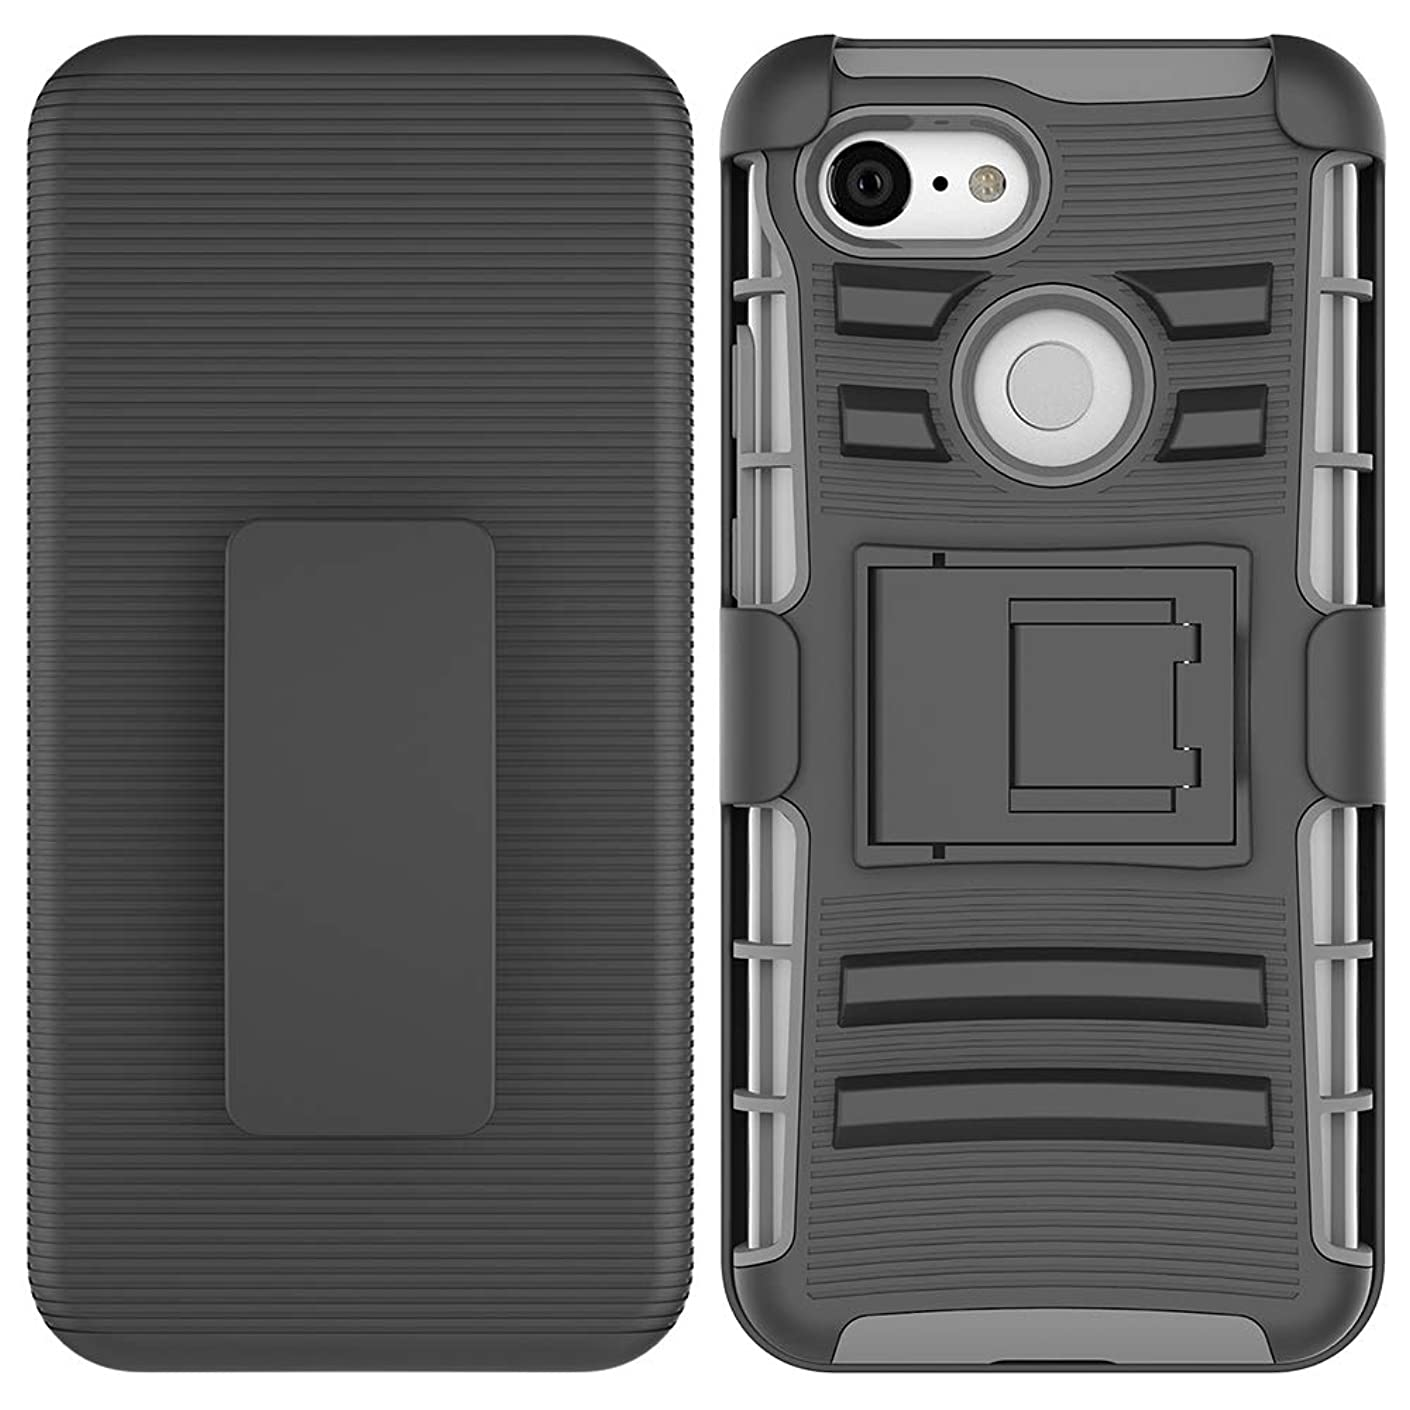 HYAIZLZ Case for iPhone XIR Armor Case 3 in 1 Stand Holster Combo Back Cover with Swivel Spring Belt Clip Back Cover for iPhone XIR 6.1inch,Grey